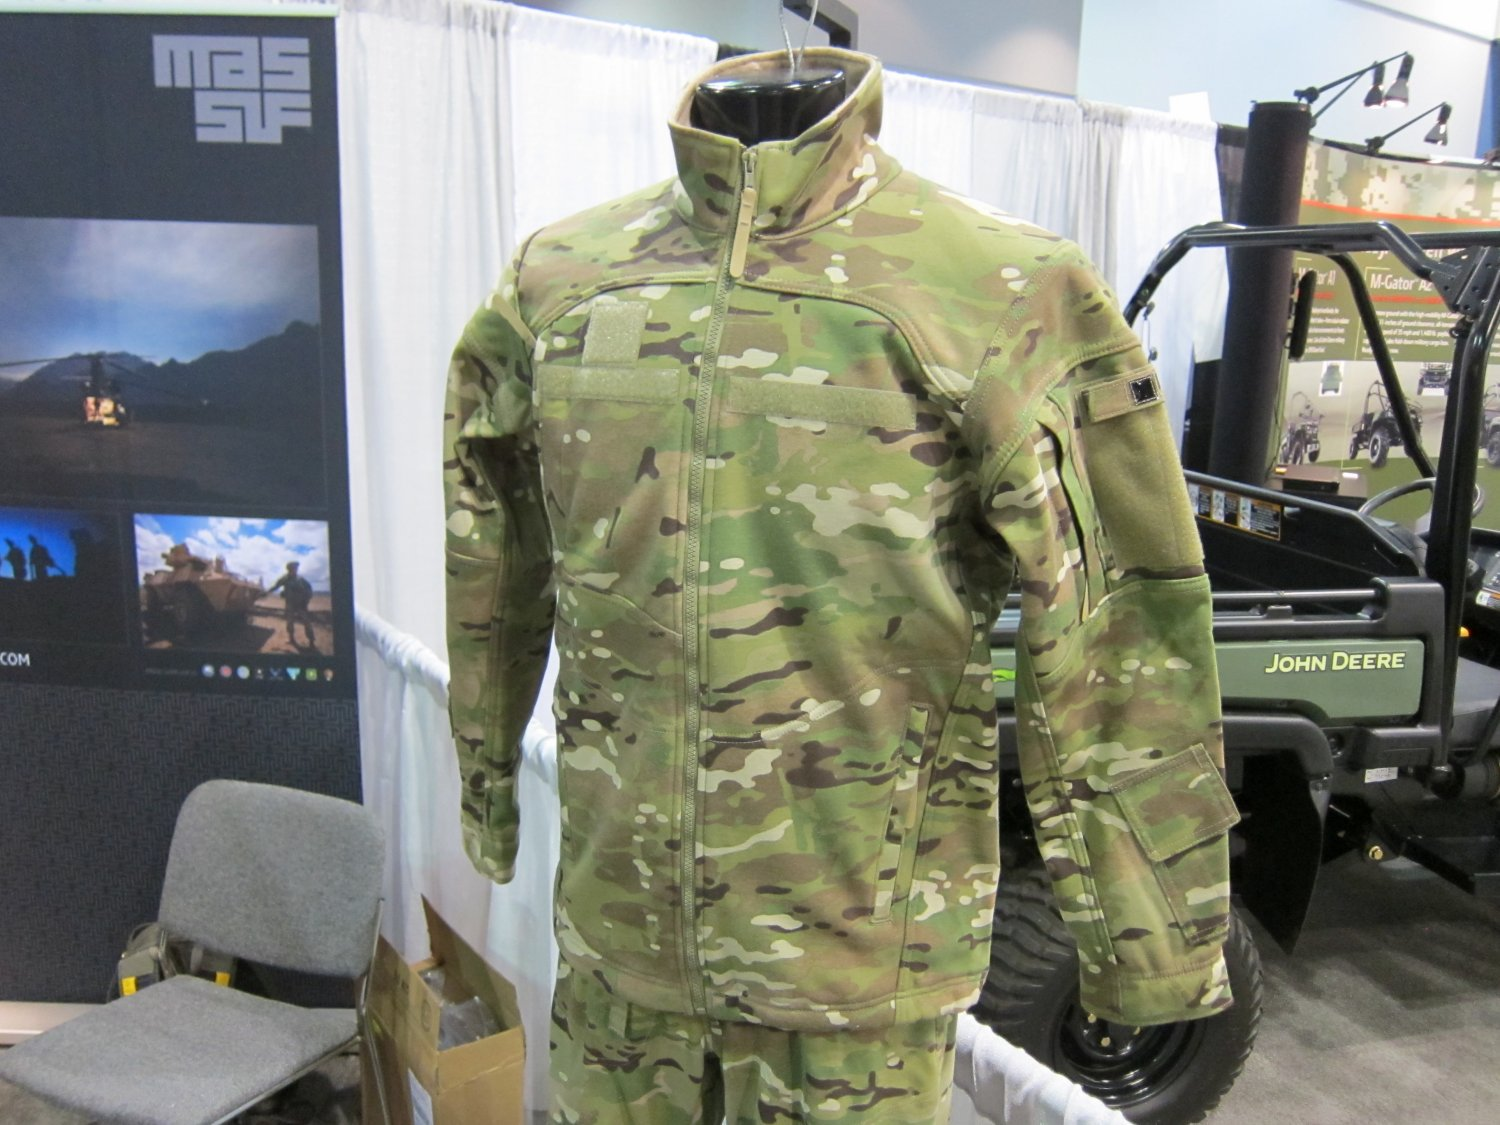 Massif Mountain Gear Flame Resistant FR Tactical Combat Clothing SOFIC 2011 5 <!  :en  >Massif Mountain Gear Flame Resistant (FR) Combat Clothing in Crye MultiCam Camouflage Pattern: High End Military Grade Tactical Jackets, Combat Shirts, and Tactical Pants for Military Special Operations Forces (SOF) and Civilian Tactical Shooters<!  :  >